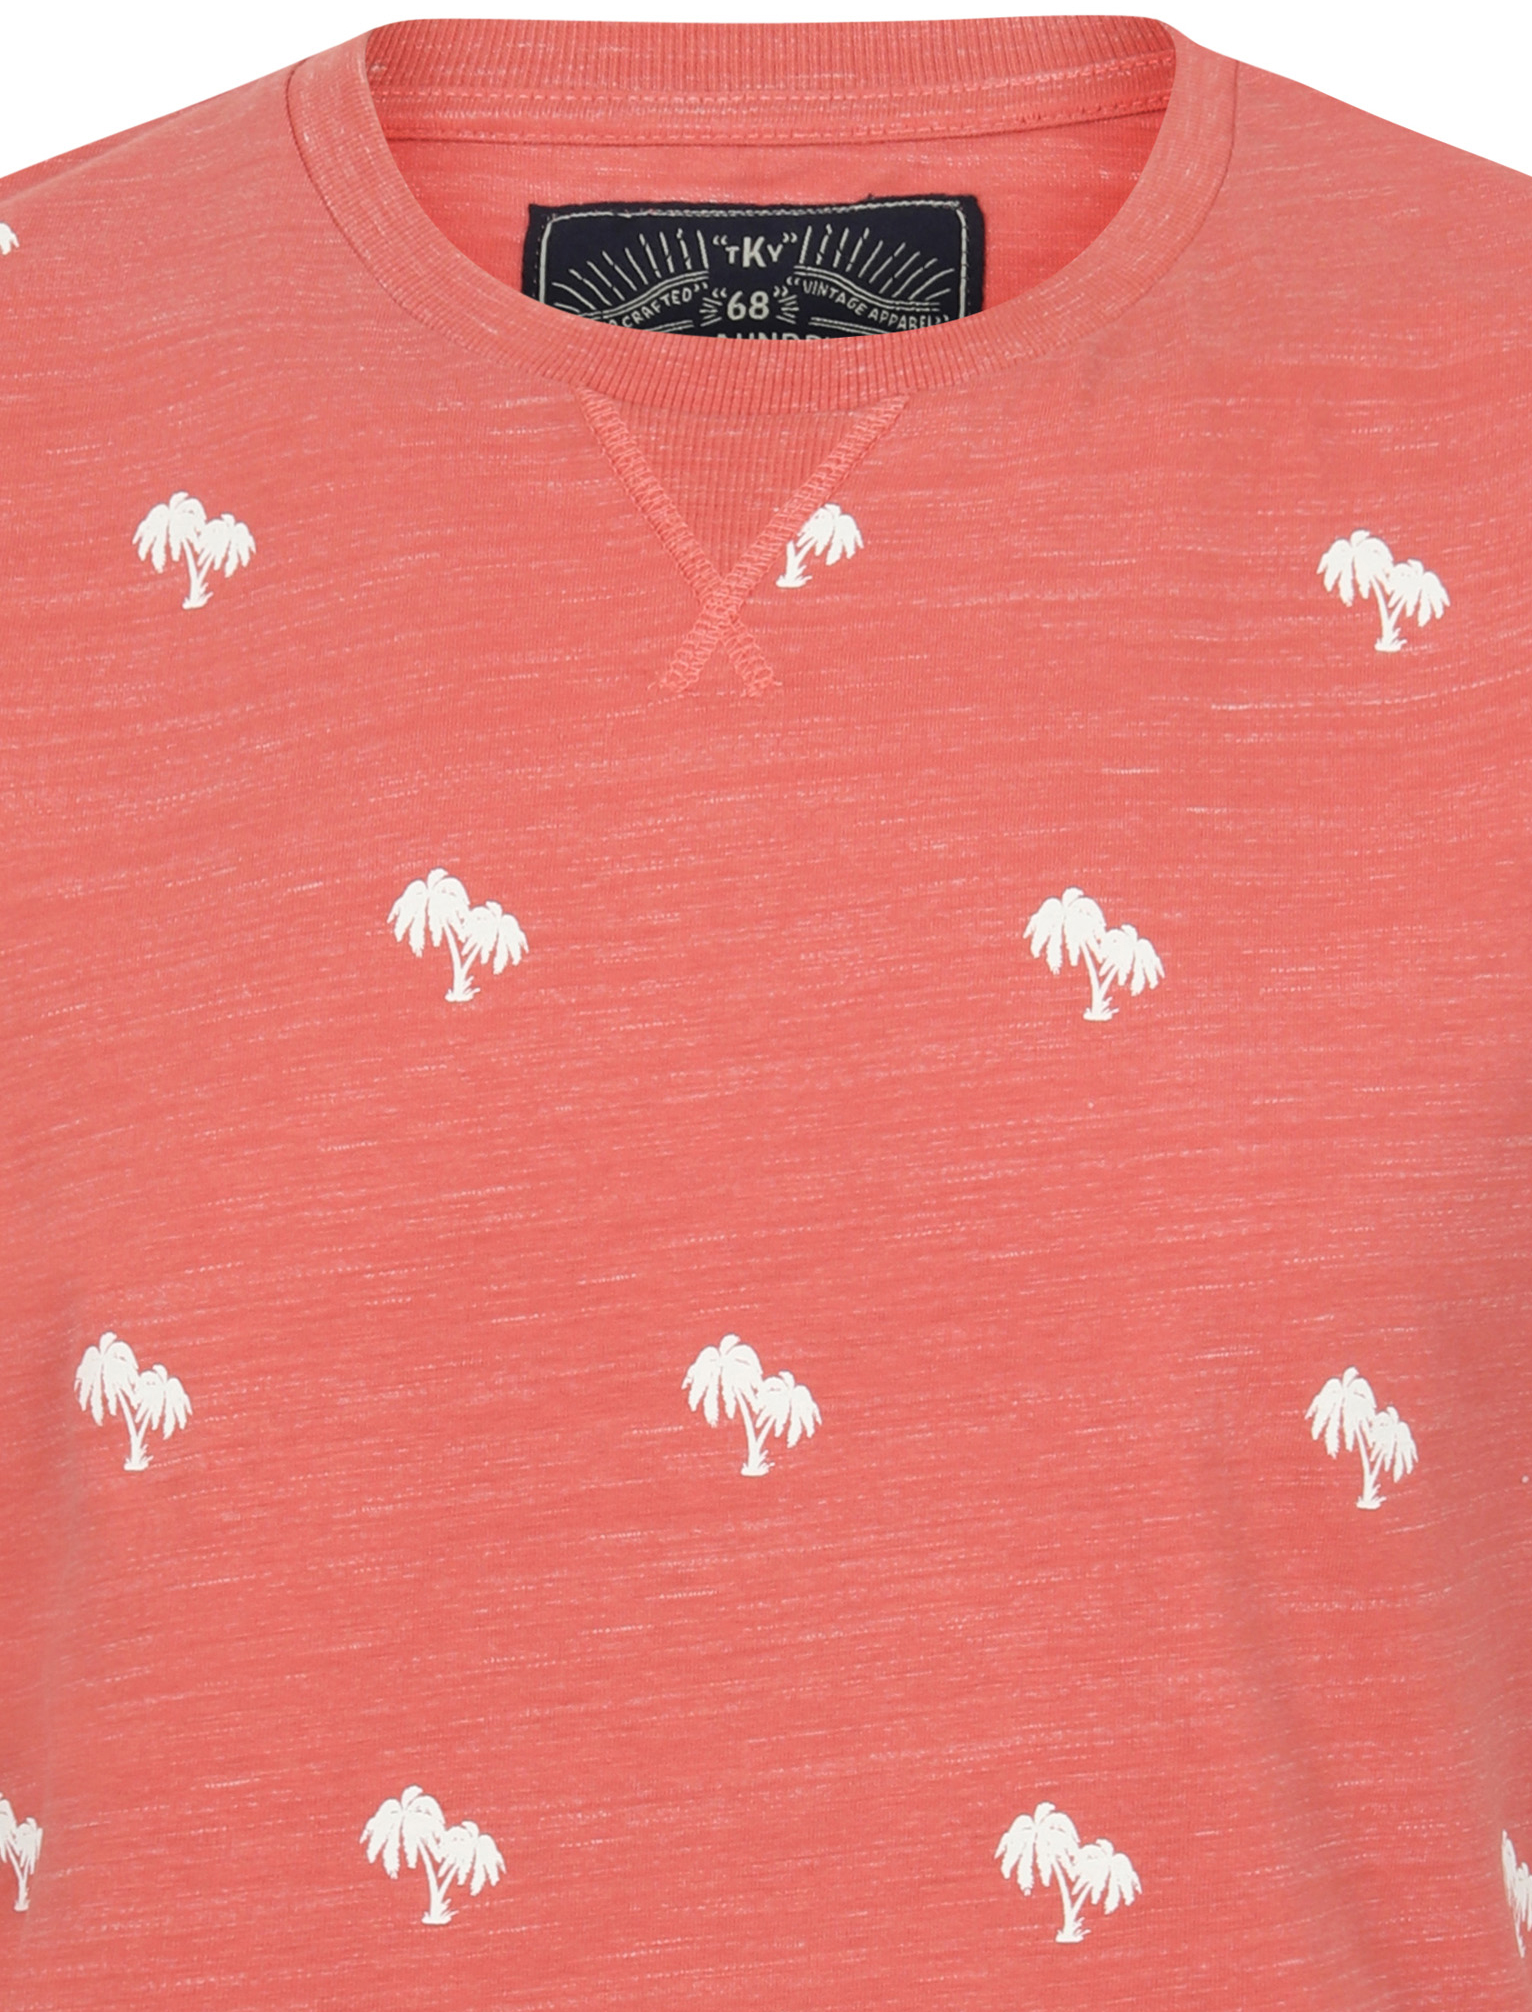 thumbnail 45 - Tokyo-Laundry-Tropical-Print-Crew-Neck-T-Shirt-Hawaiian-Floral-Summer-Holiday